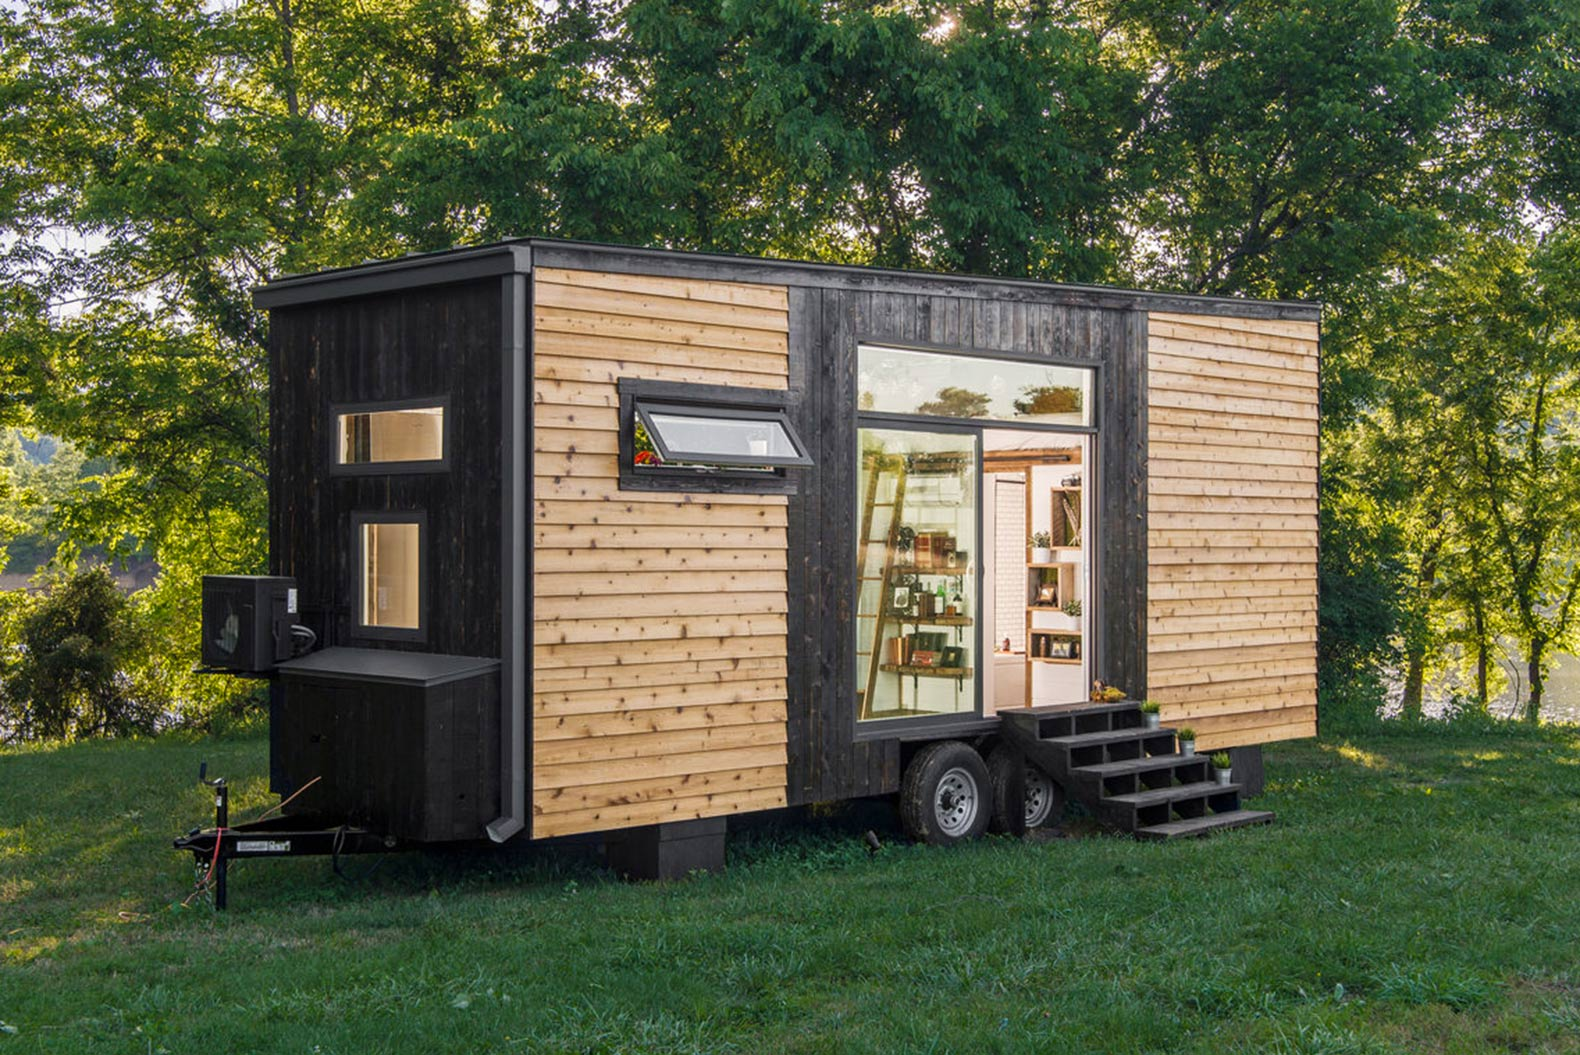 Incredible Tiny Home Clad In Burnt Wood Packs A Ton Of Luxury Into Just Interior Design Ideas Tzicisoteloinfo